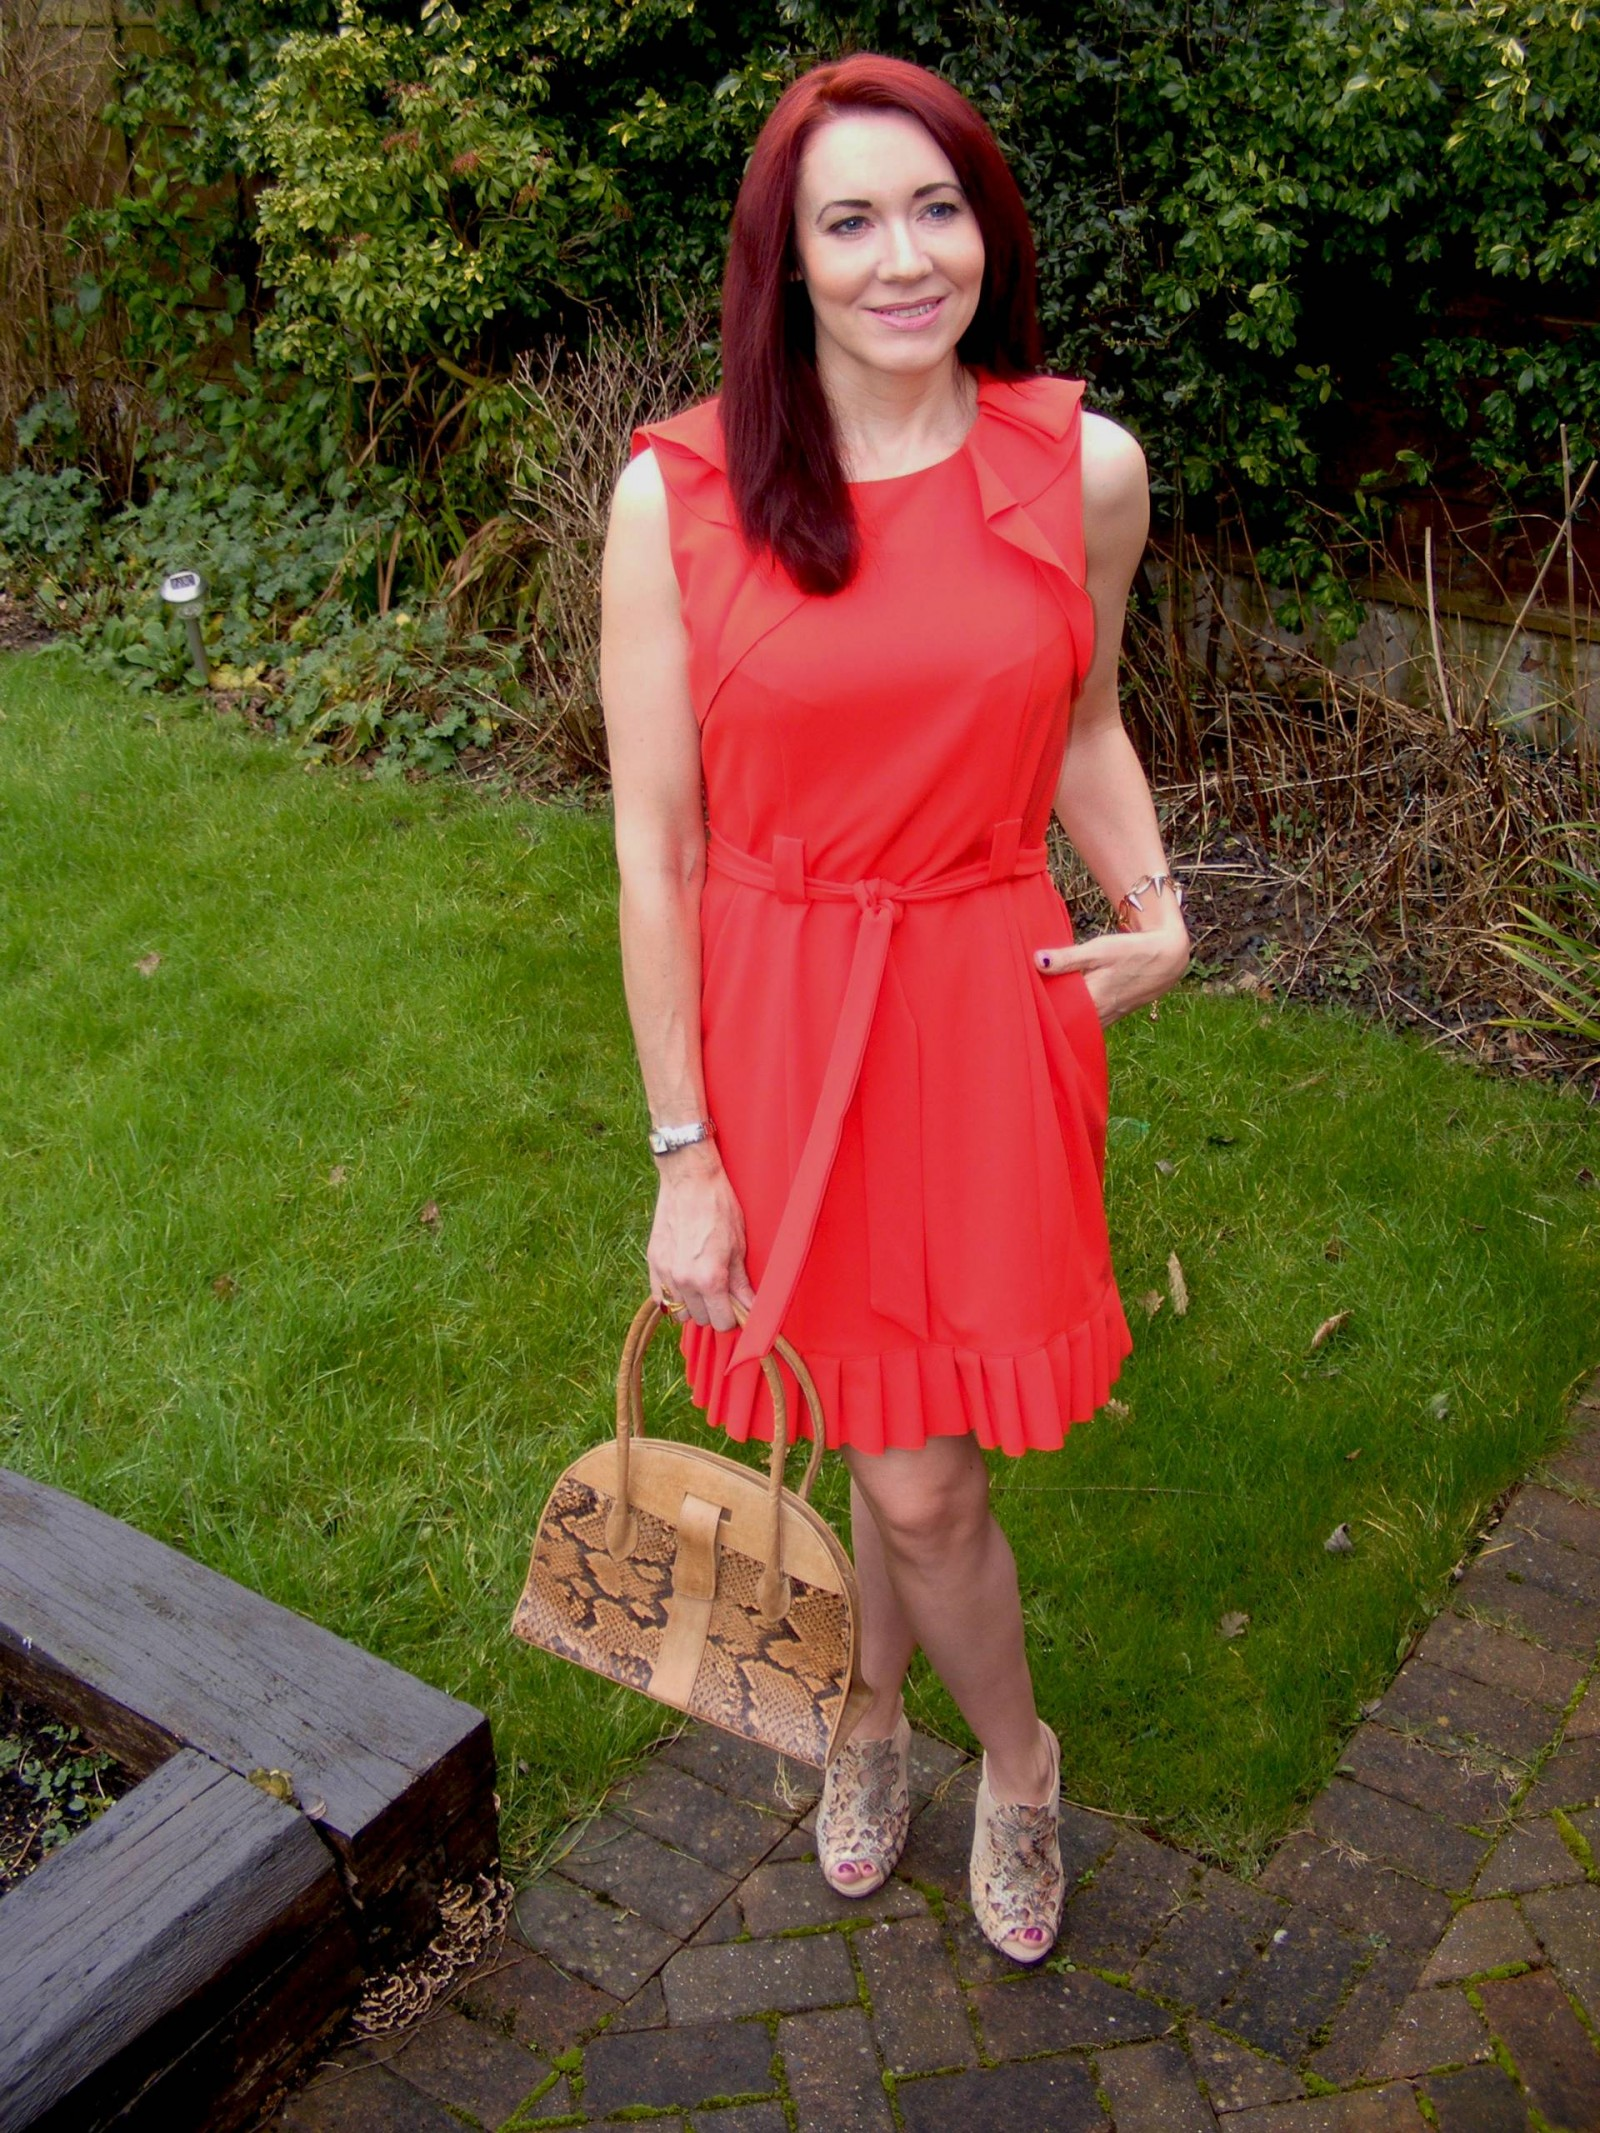 J by Jasper Conran red dress